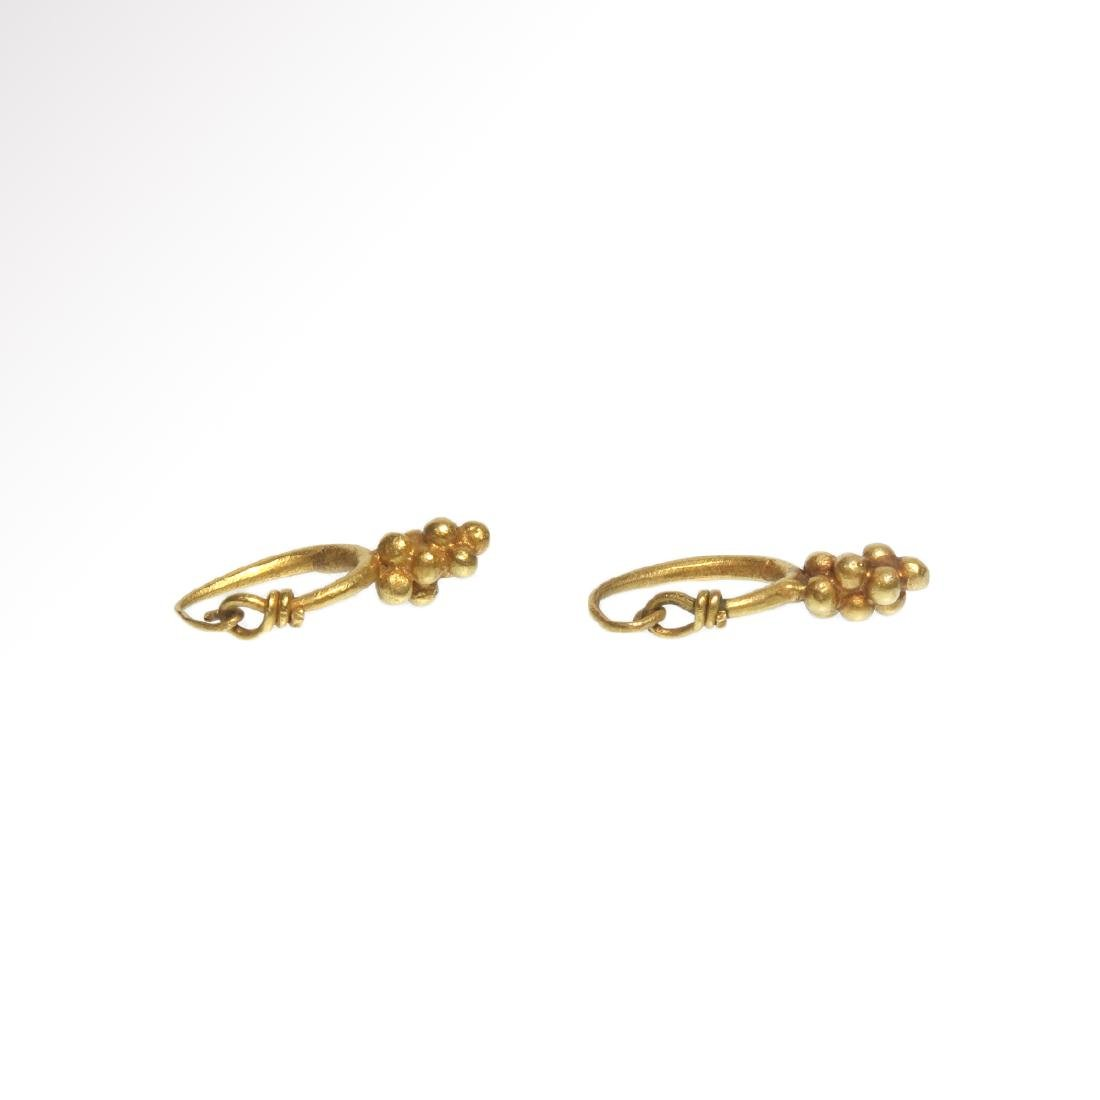 Roman Gold Earrings with Grape Drops, c. 1st - 3rd - 5